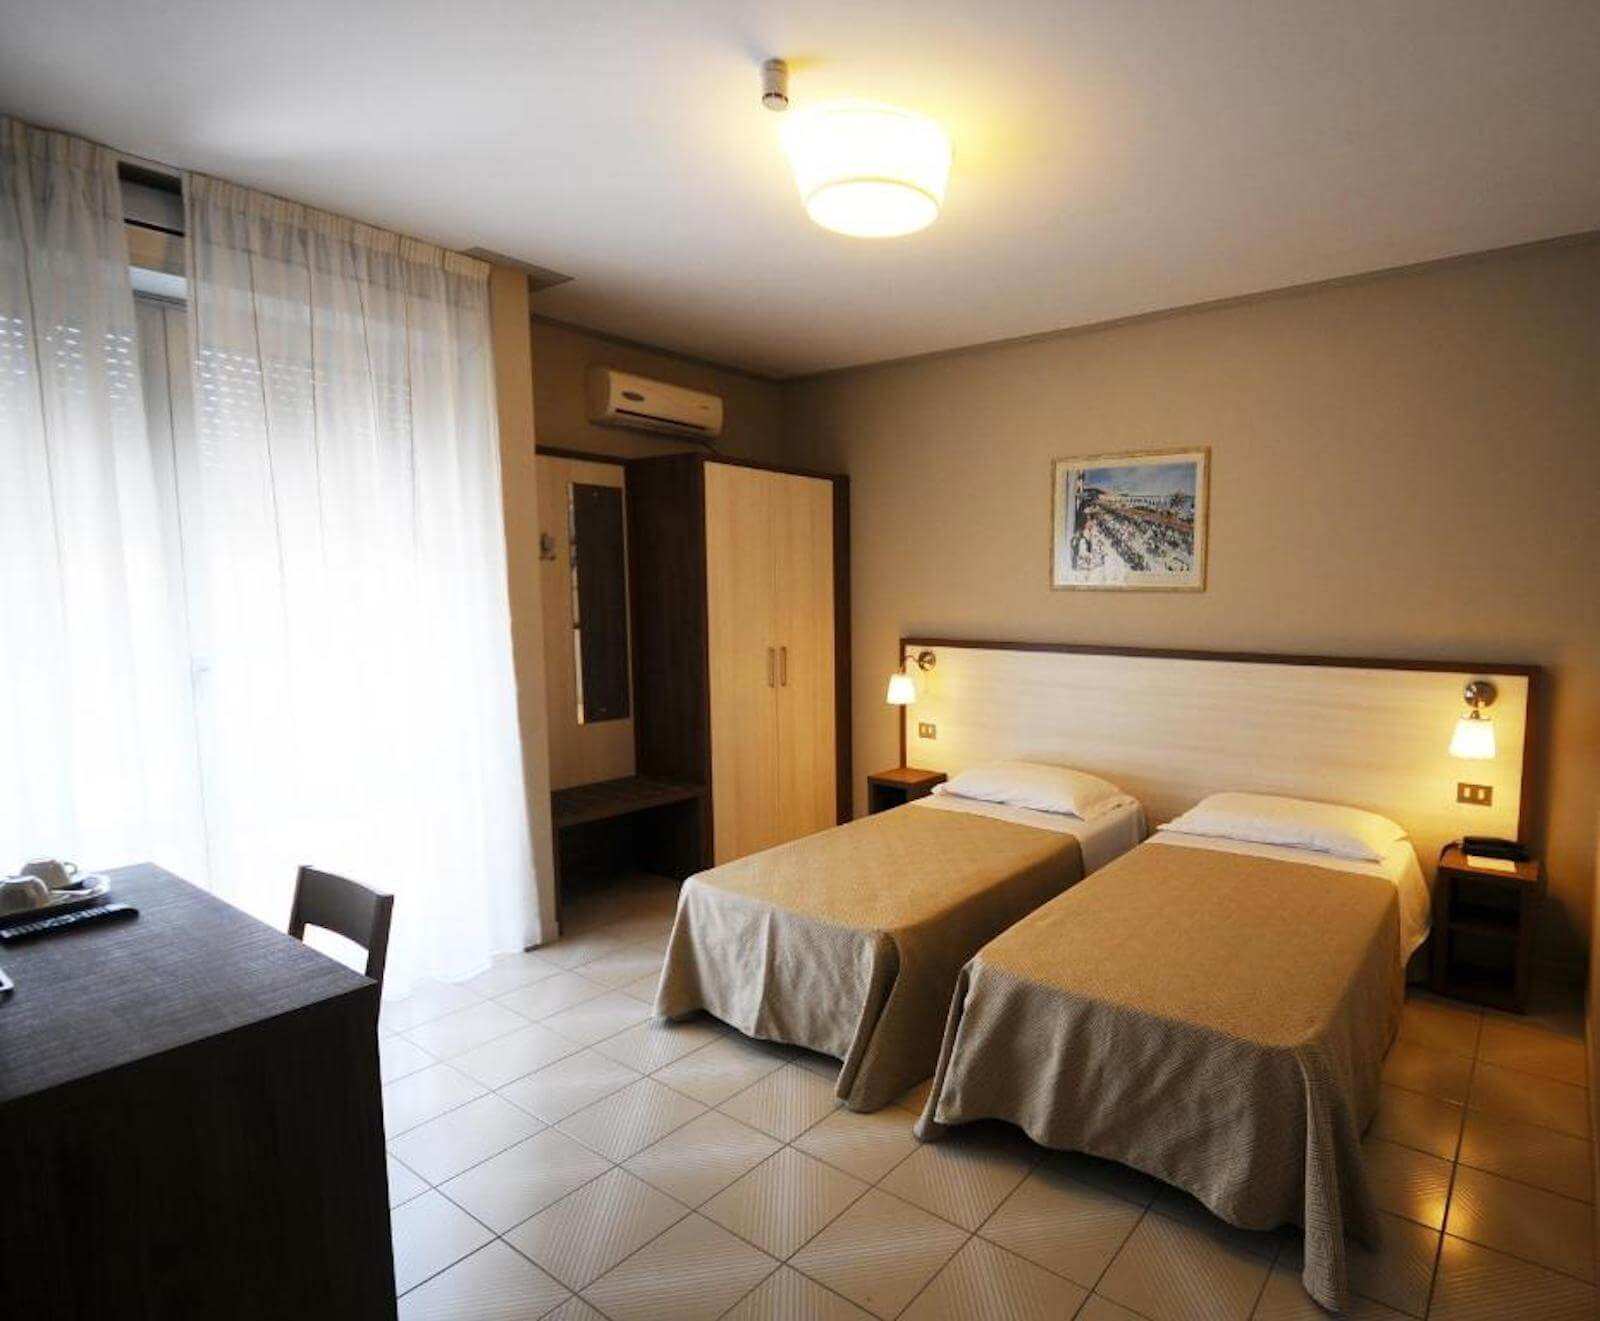 We will make your holiday in the Chianti hills unforgettable